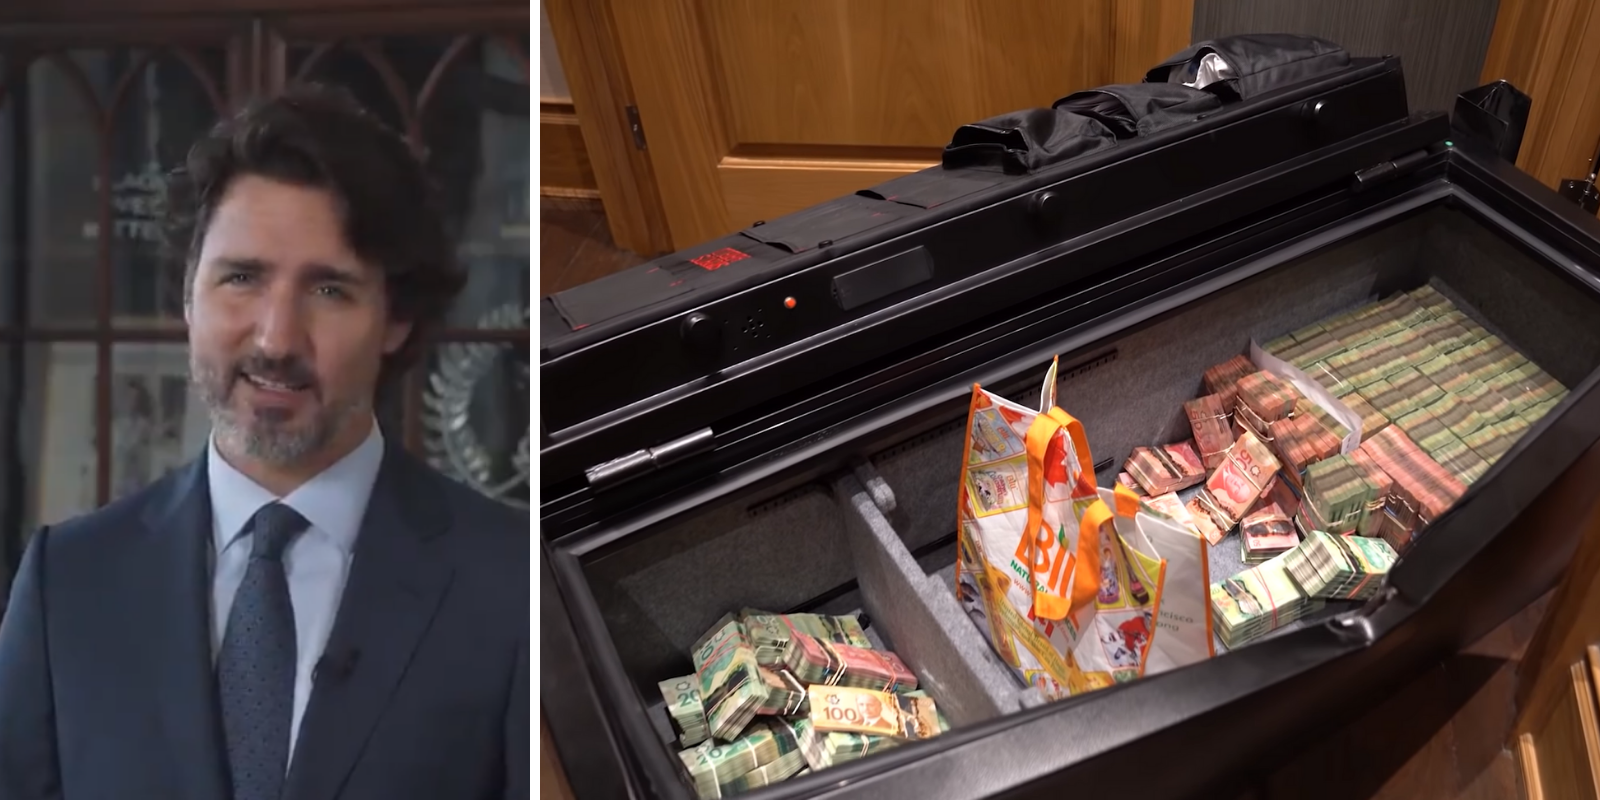 Chinese delegate met with Trudeau twice; allegedly ran illegal casino with 11 guns found, $1 million seized